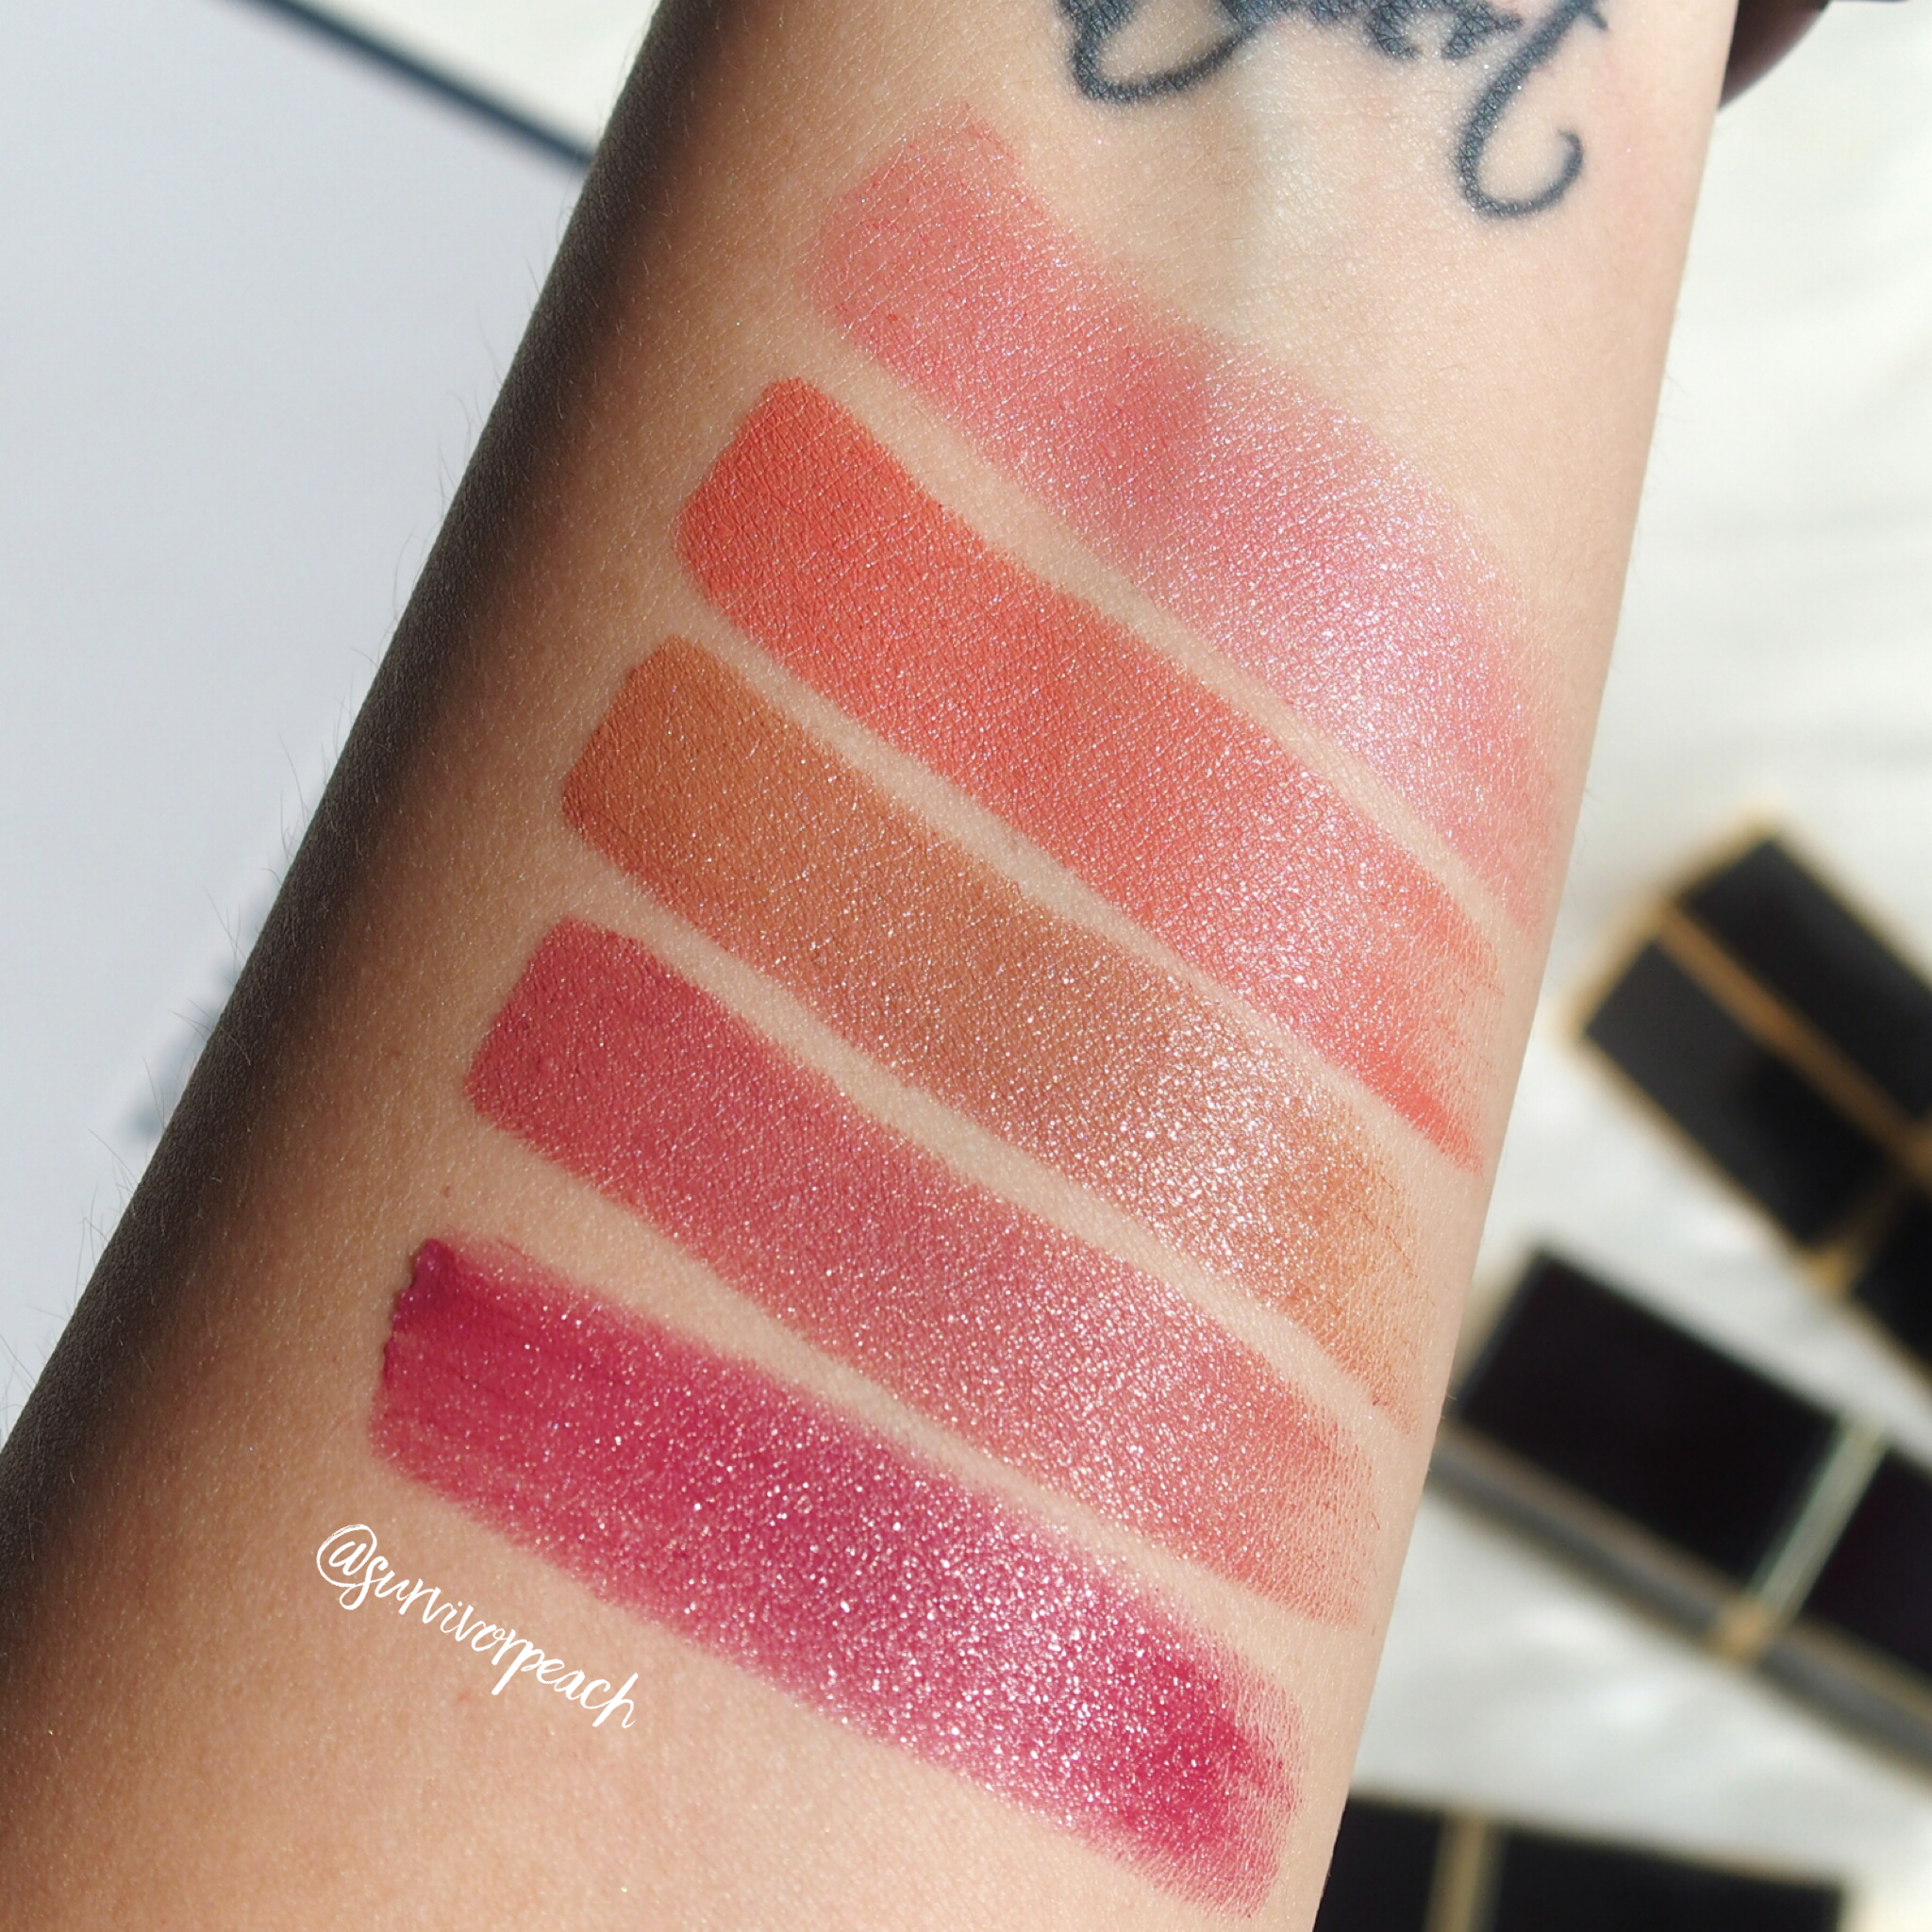 Swatches of the Tom Ford Lipsticks in Naked Coral, Twist of Fate, Negligee, Casablanca,, Adora